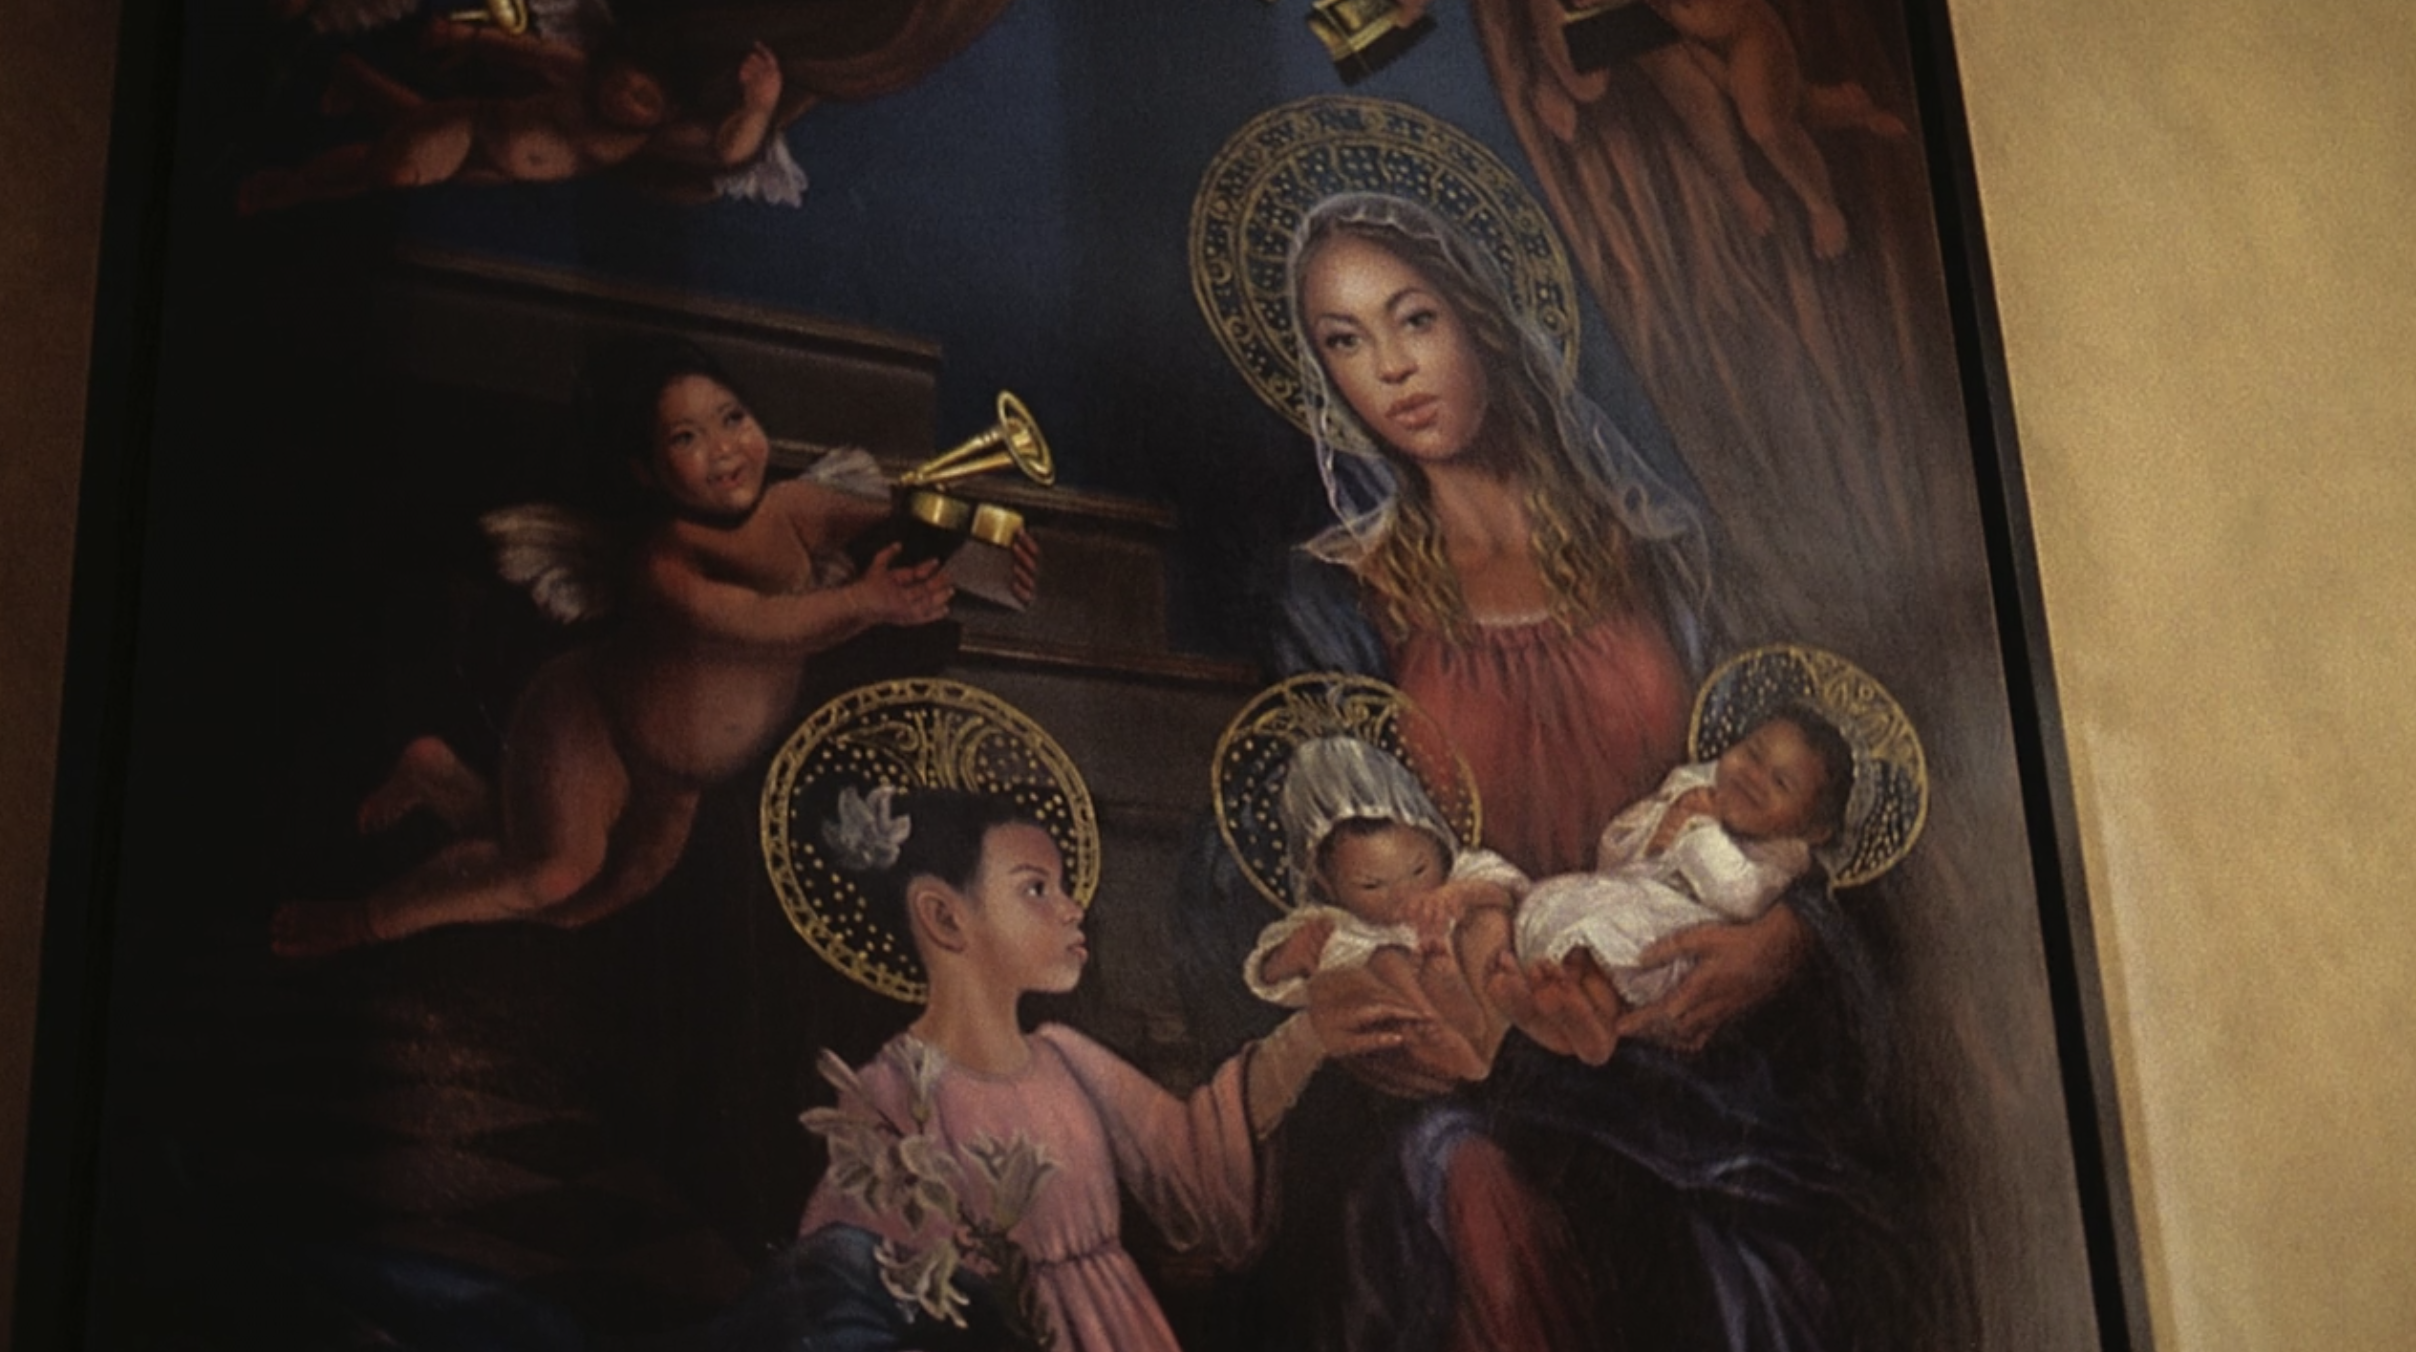 Beyoncé in a painting with her daughter and twins